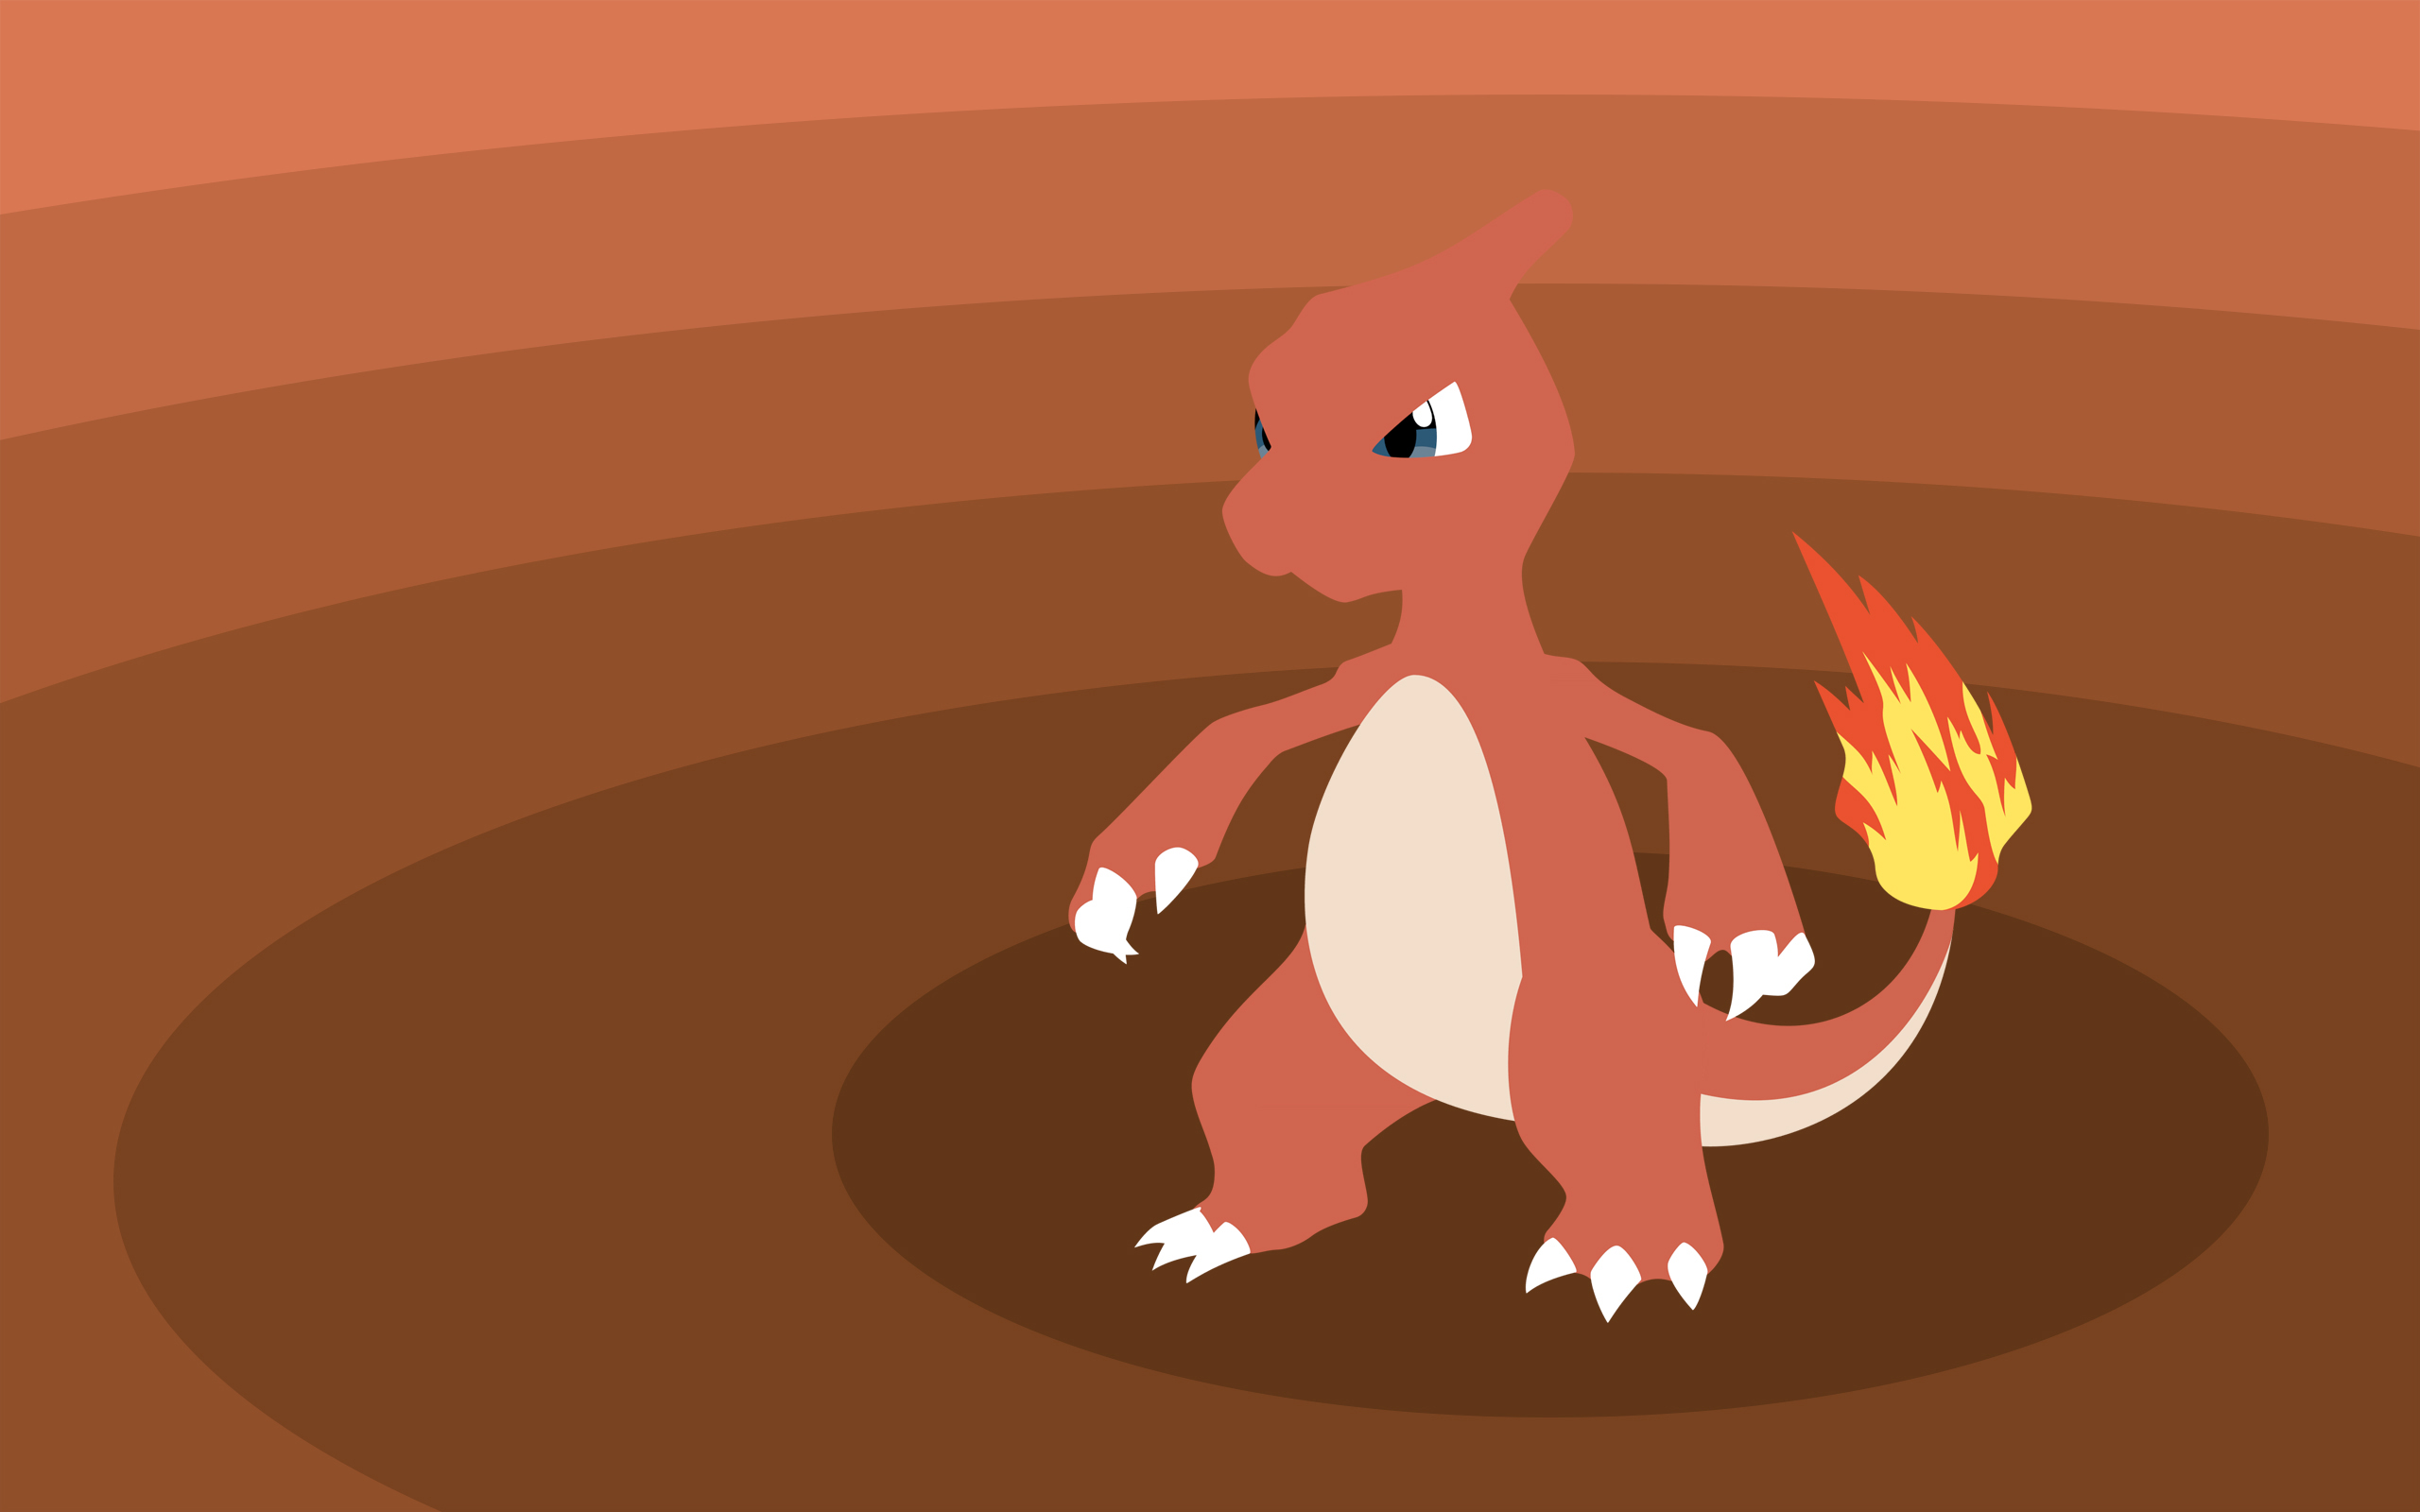 Charmeleon Wallpaper Images & Pictures - Becuo: becuo.com/charmeleon-wallpaper